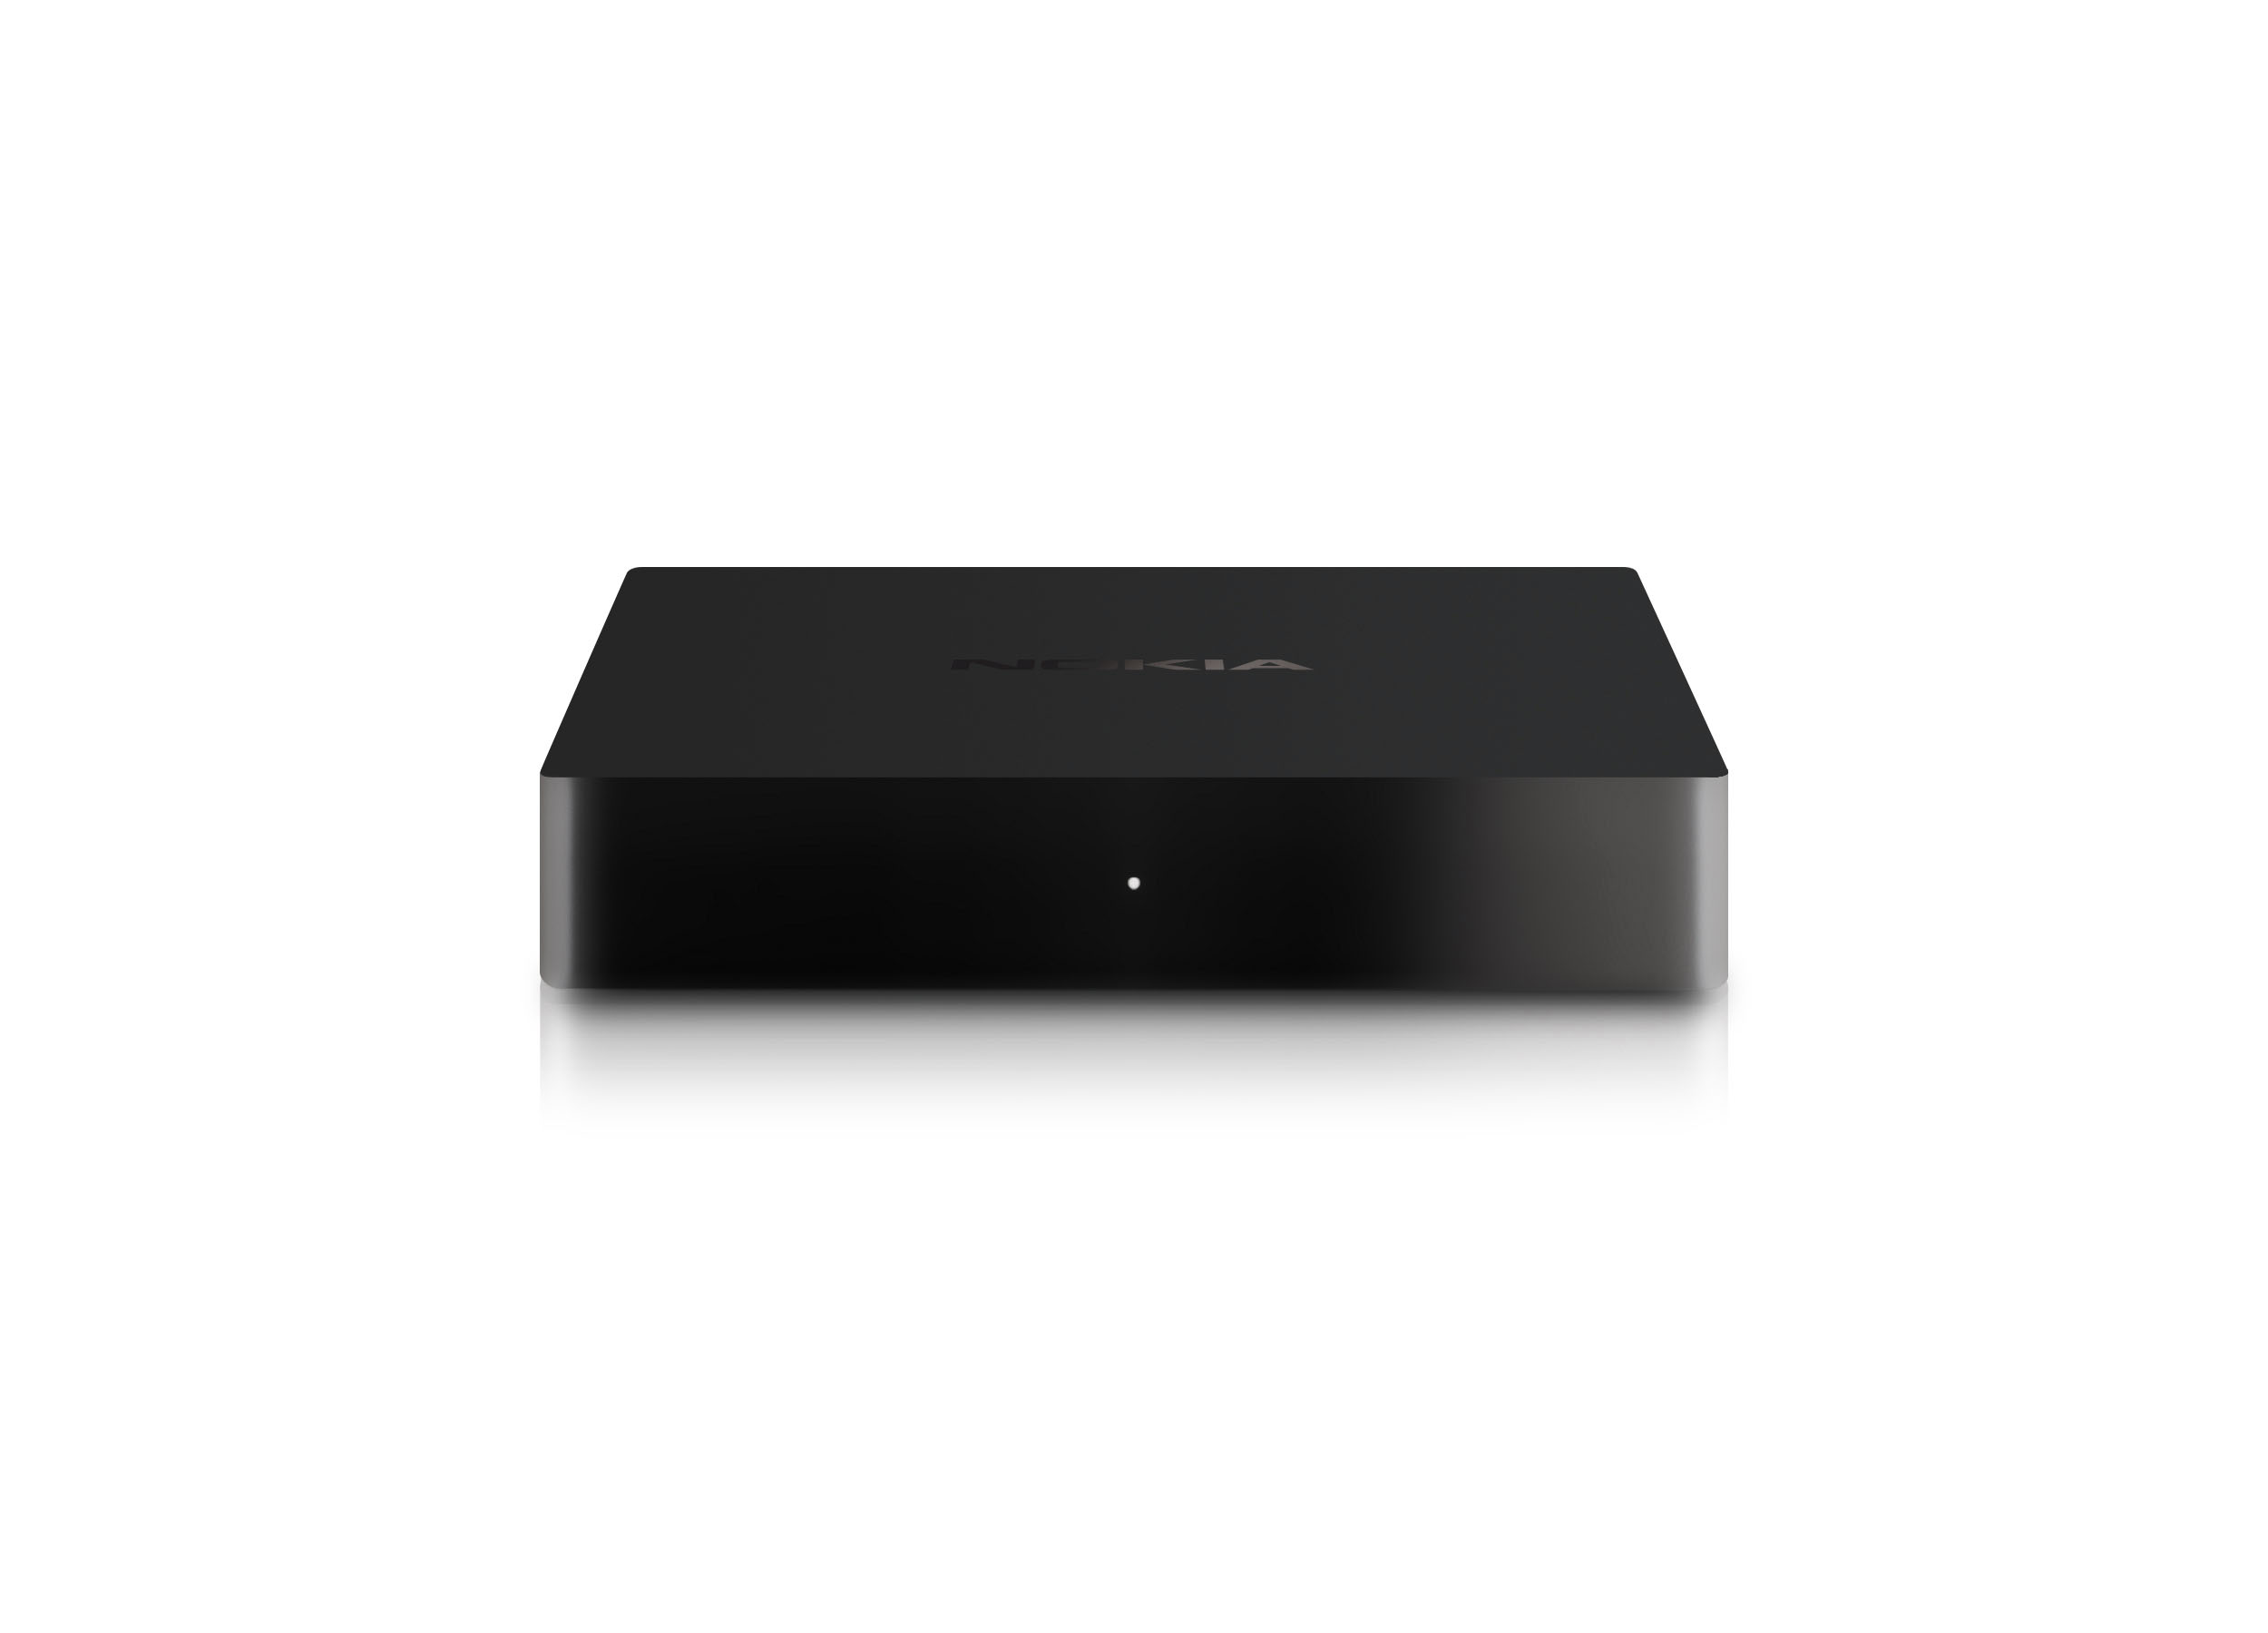 Nokia Streaming Box 8000